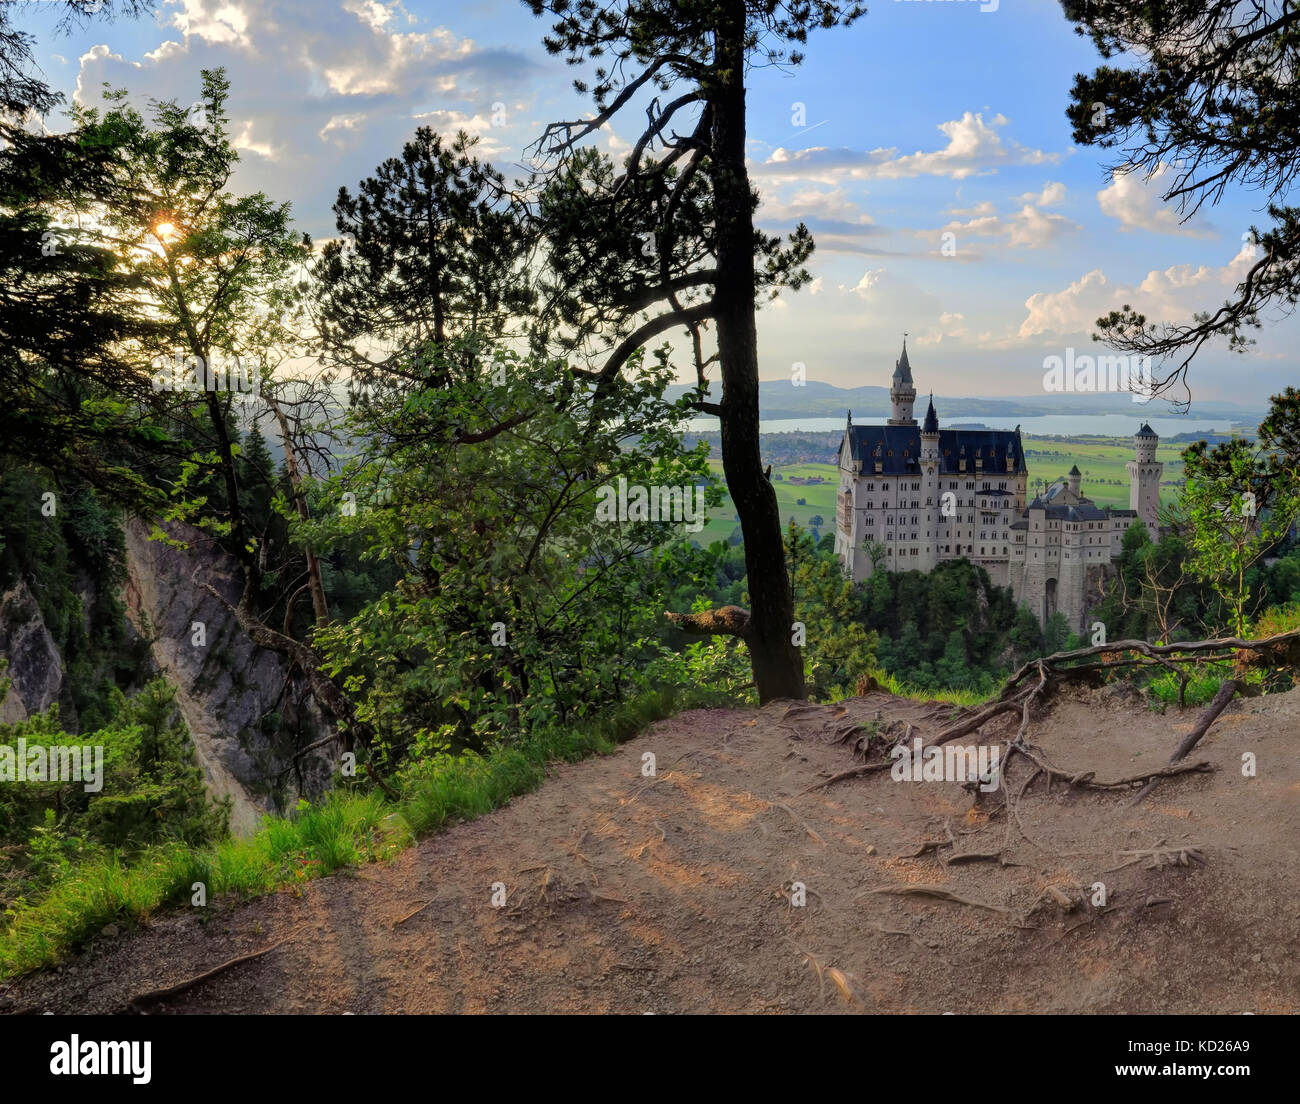 Shot of Neuschwanstein Castle from within the trees. - Stock Image